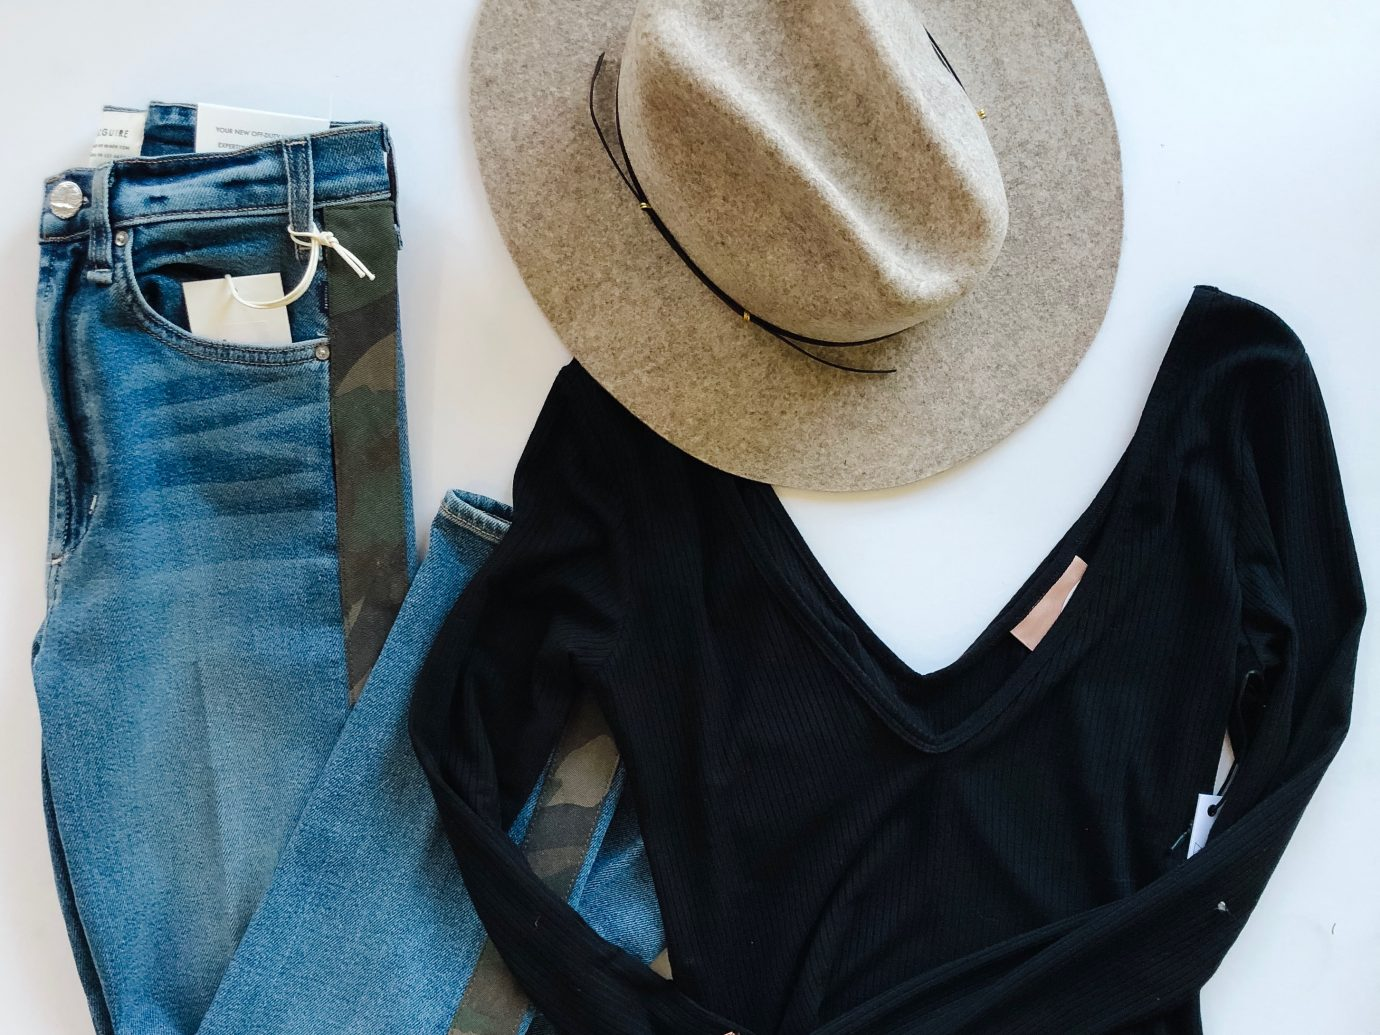 Clothing from Madison and Melrose